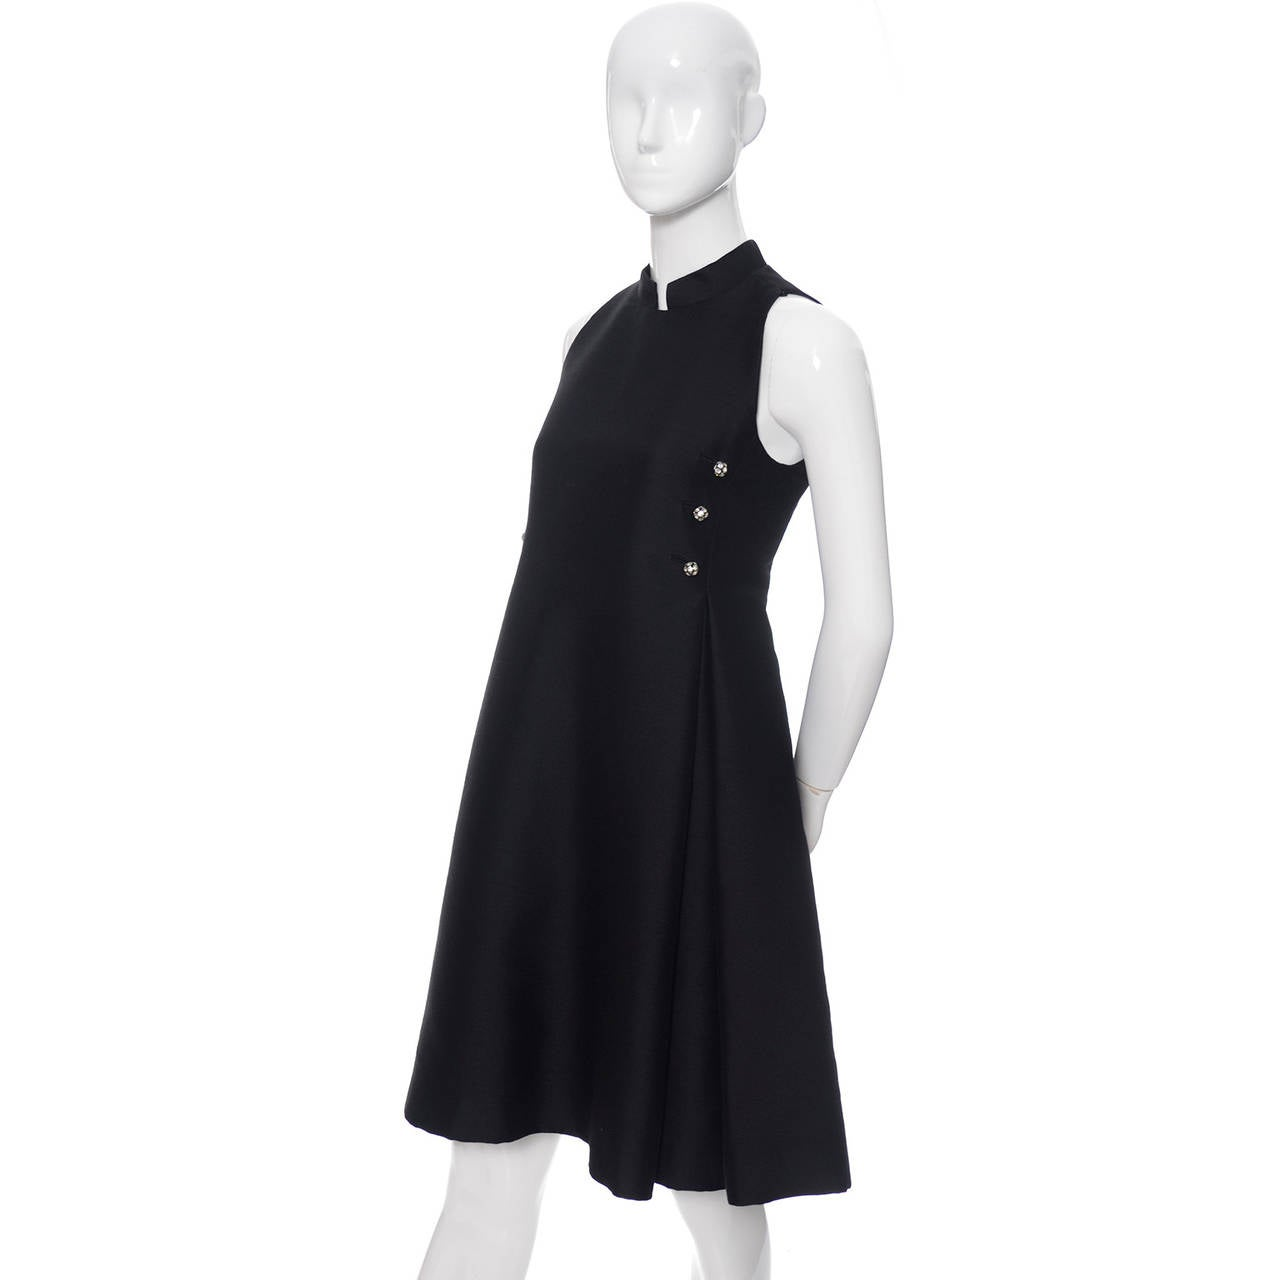 Geoffrey Beene 1960s Vintage Midi Dress Mod Black Cocktail Baby Doll Rhinestones In Excellent Condition For Sale In Portland, OR